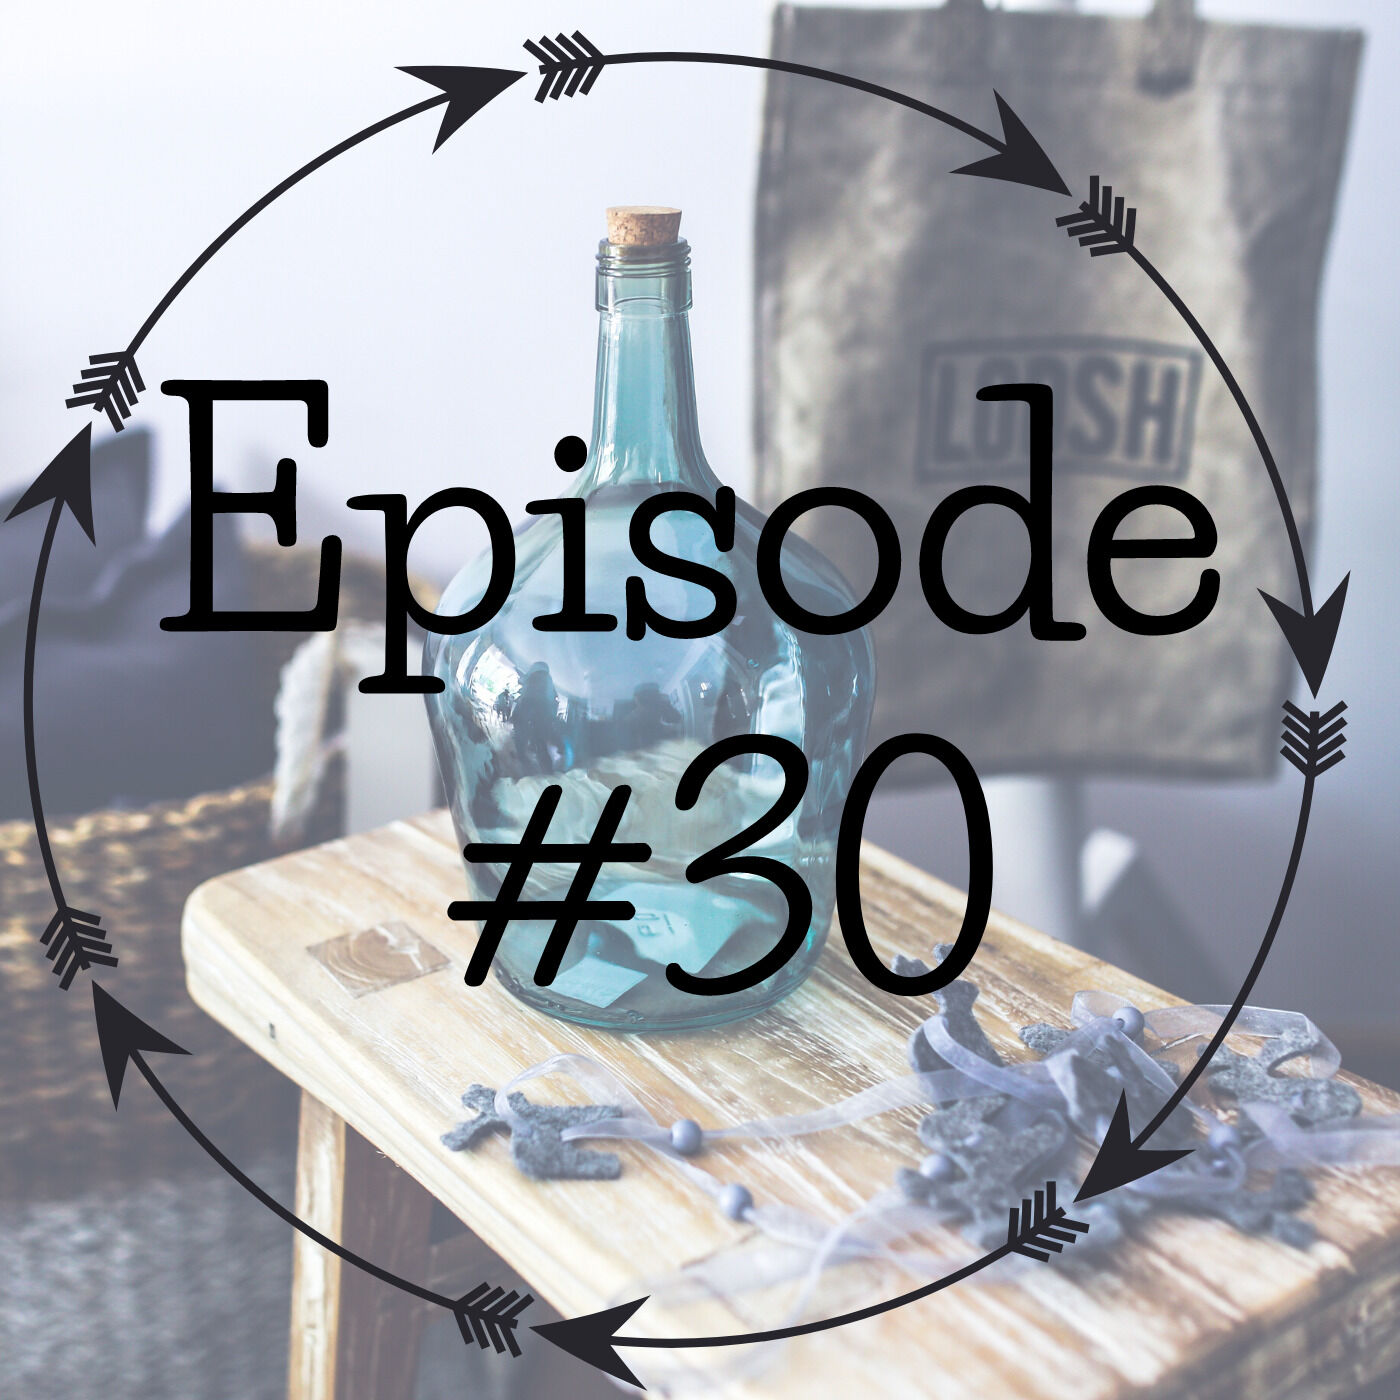 Episode #30: All about COVID-19 aka Coronavirus